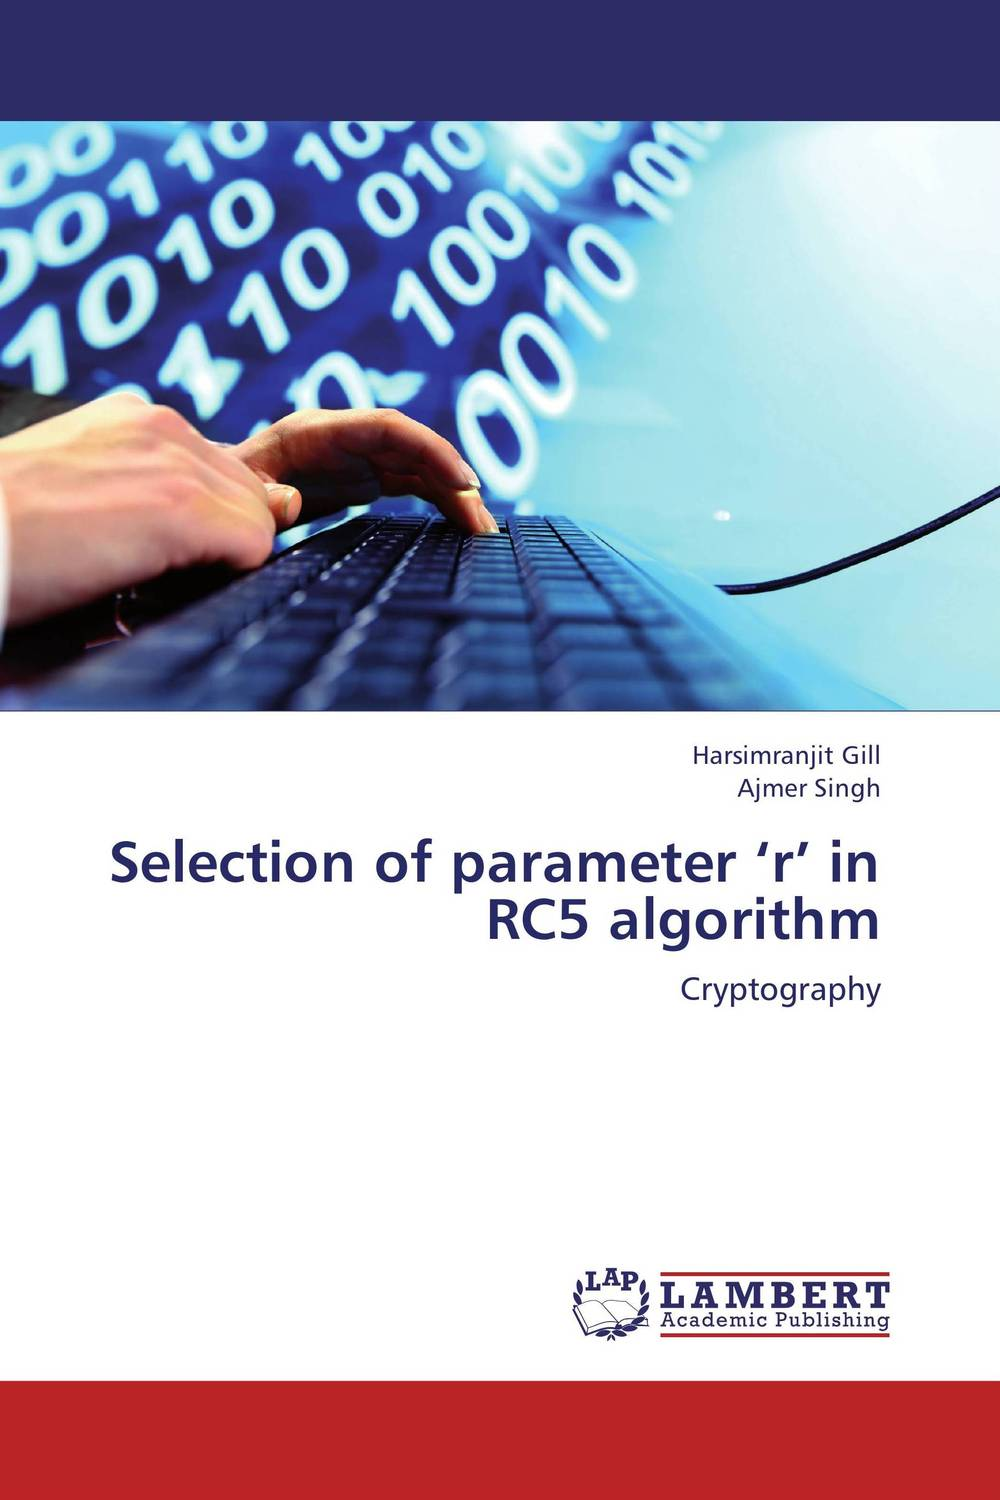 Selection of parameter 'r' in RC5 algorithm harsimranjit gill and ajmer singh selection of parameter 'r' in rc5 algorithm